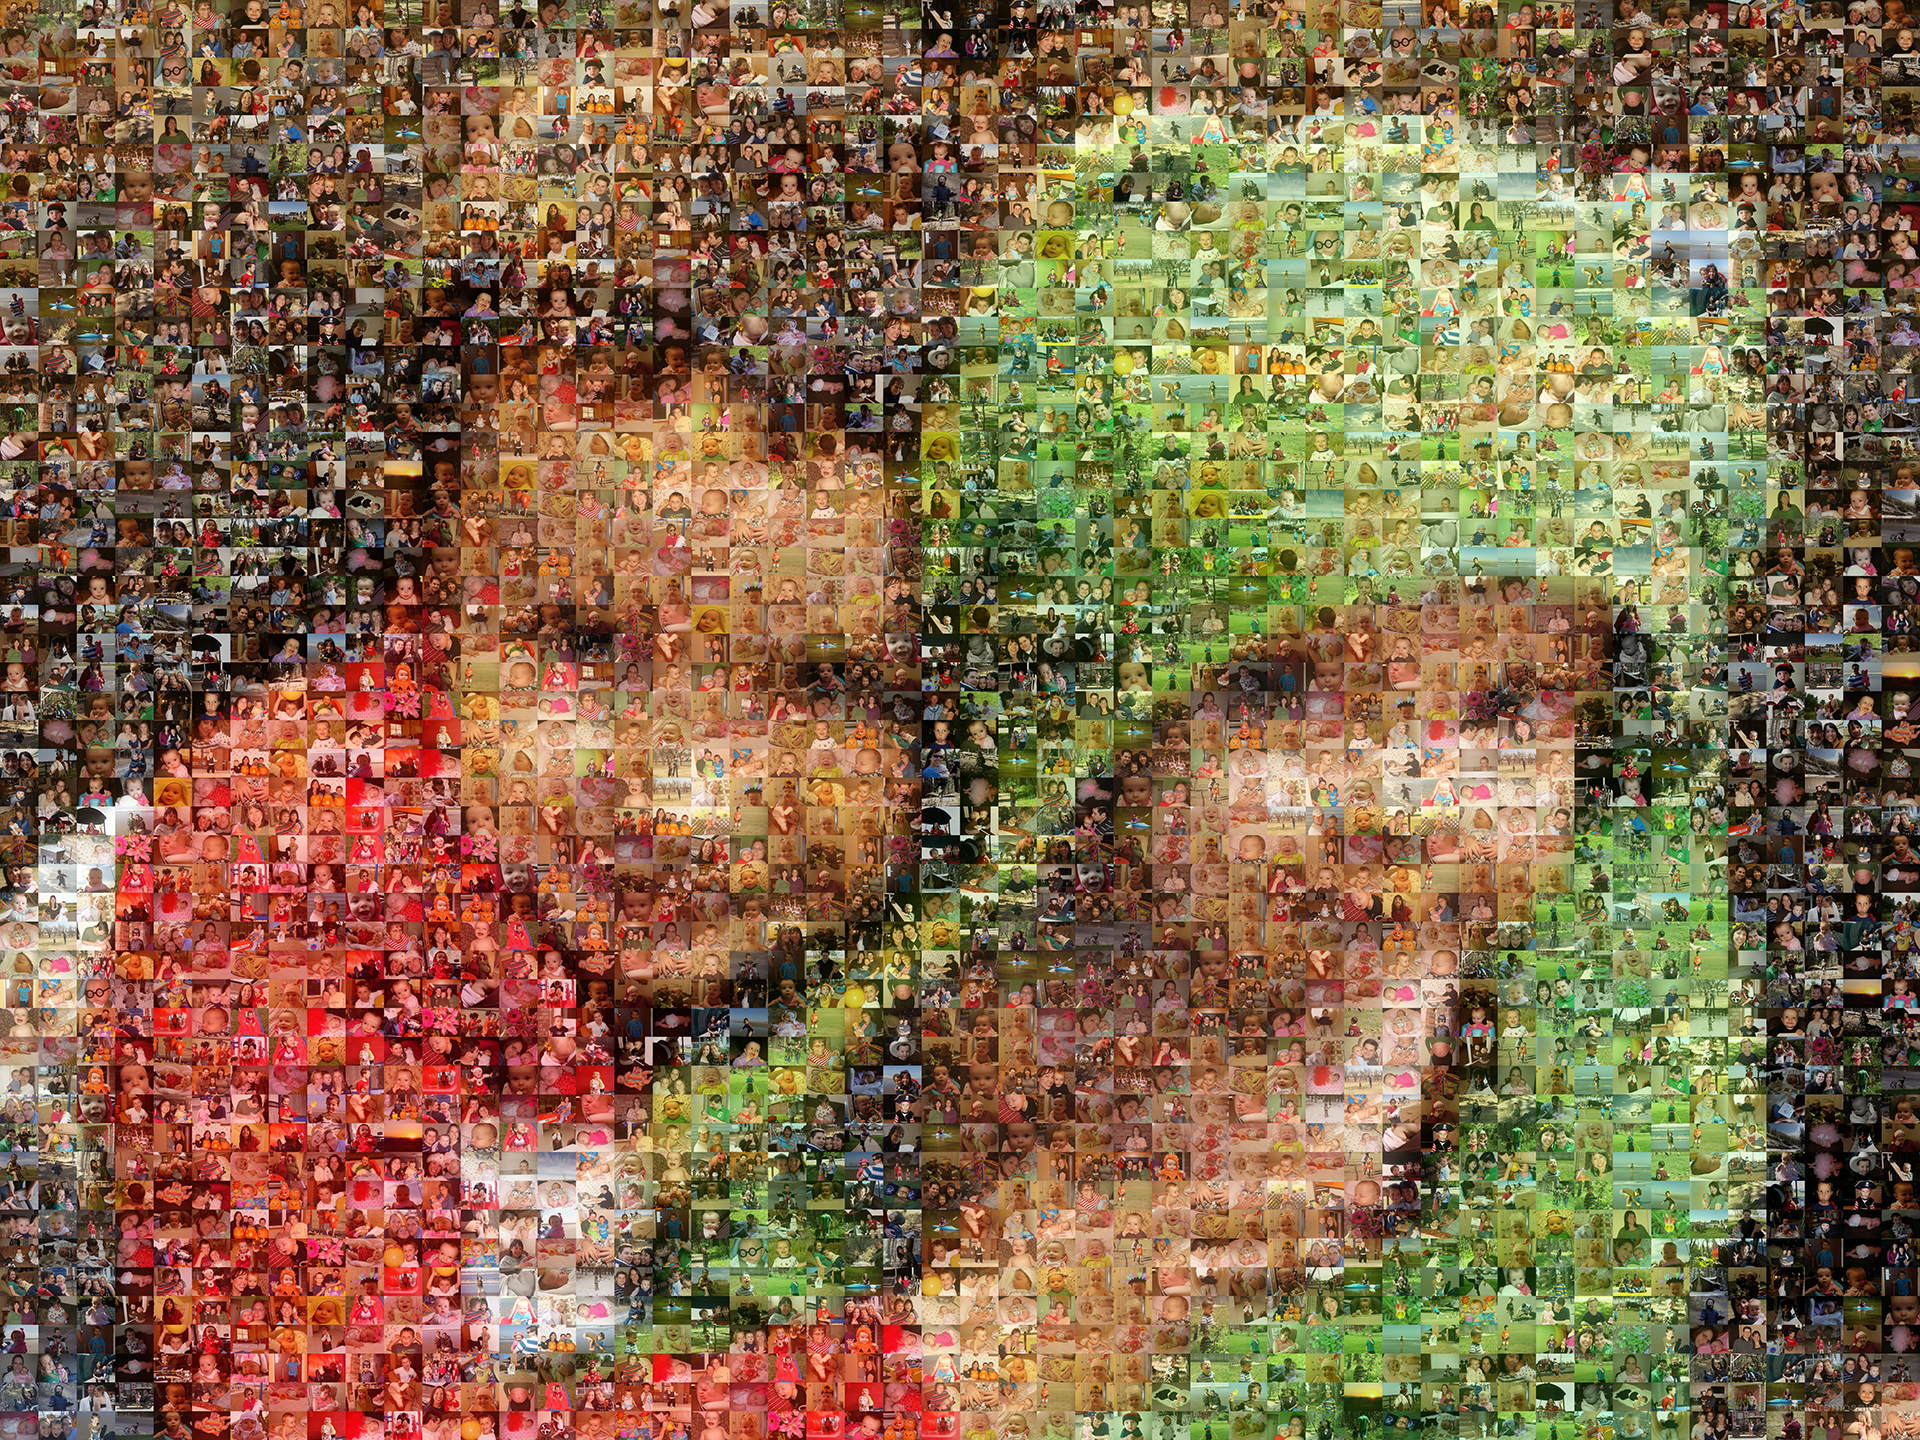 photo mosaic created using 398 family photos